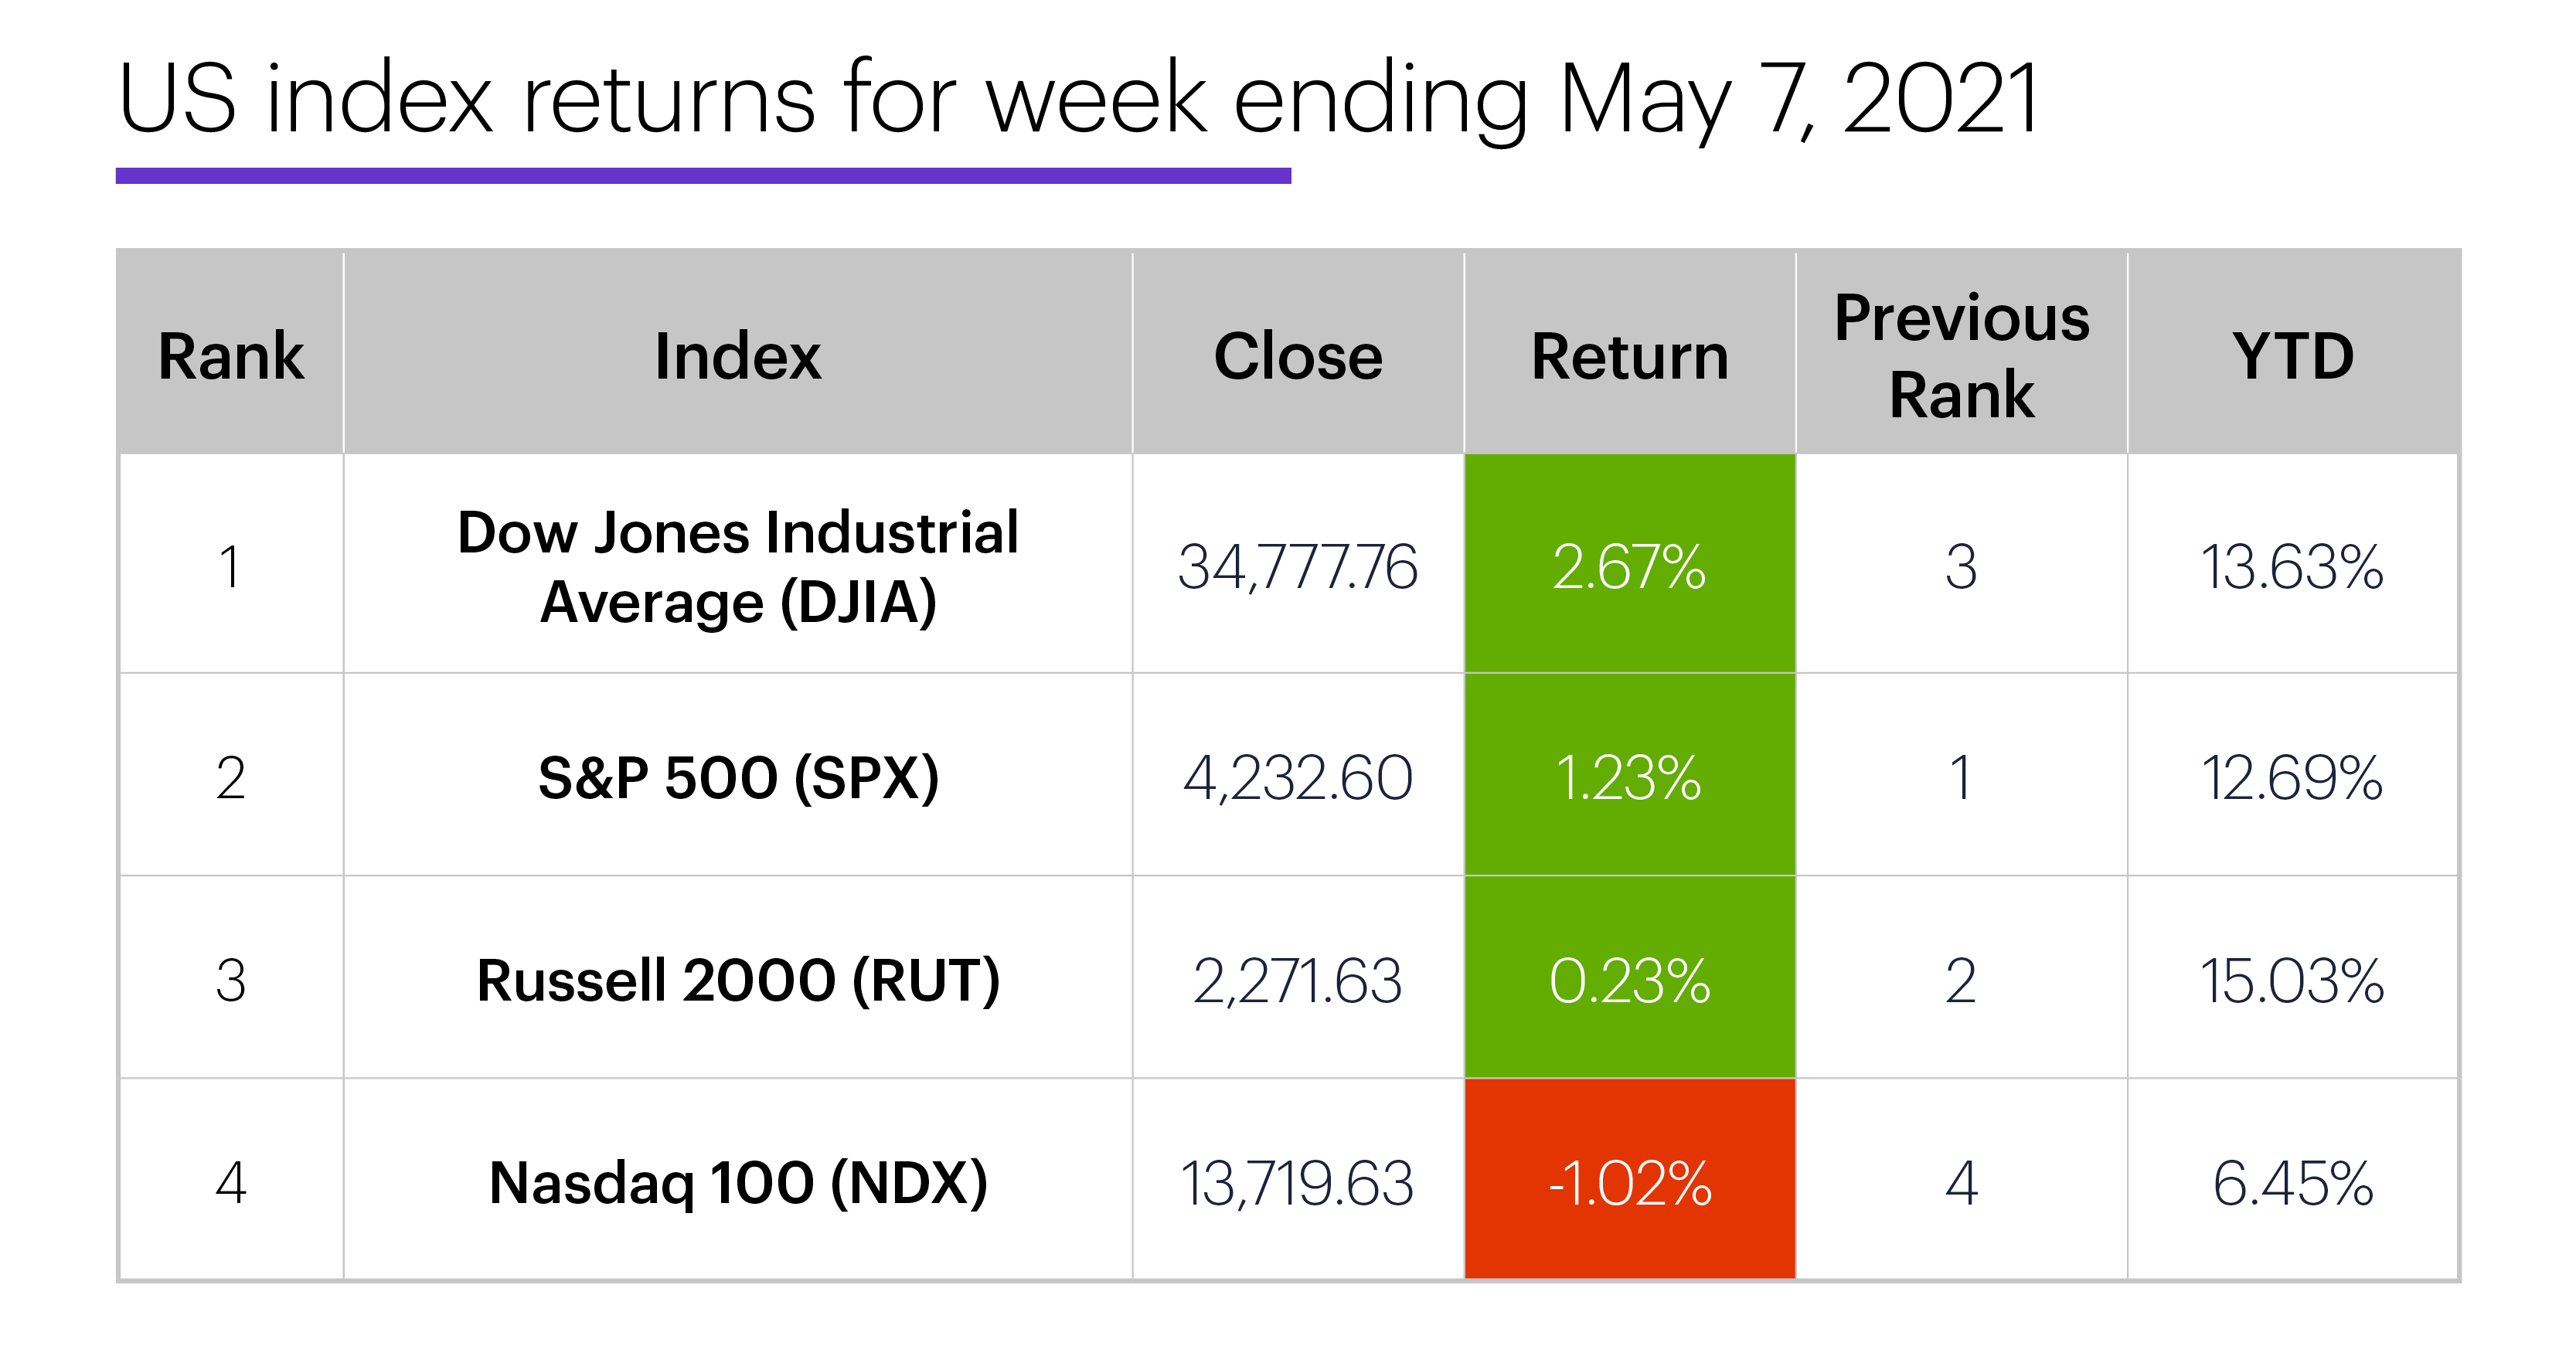 US stock index performance table for week ending 5/7/20. S&P 500 (SPX), Nasdaq 100 (NDX), Russell 2000 (RUT), Dow Jones Industrial Average (DJIA).